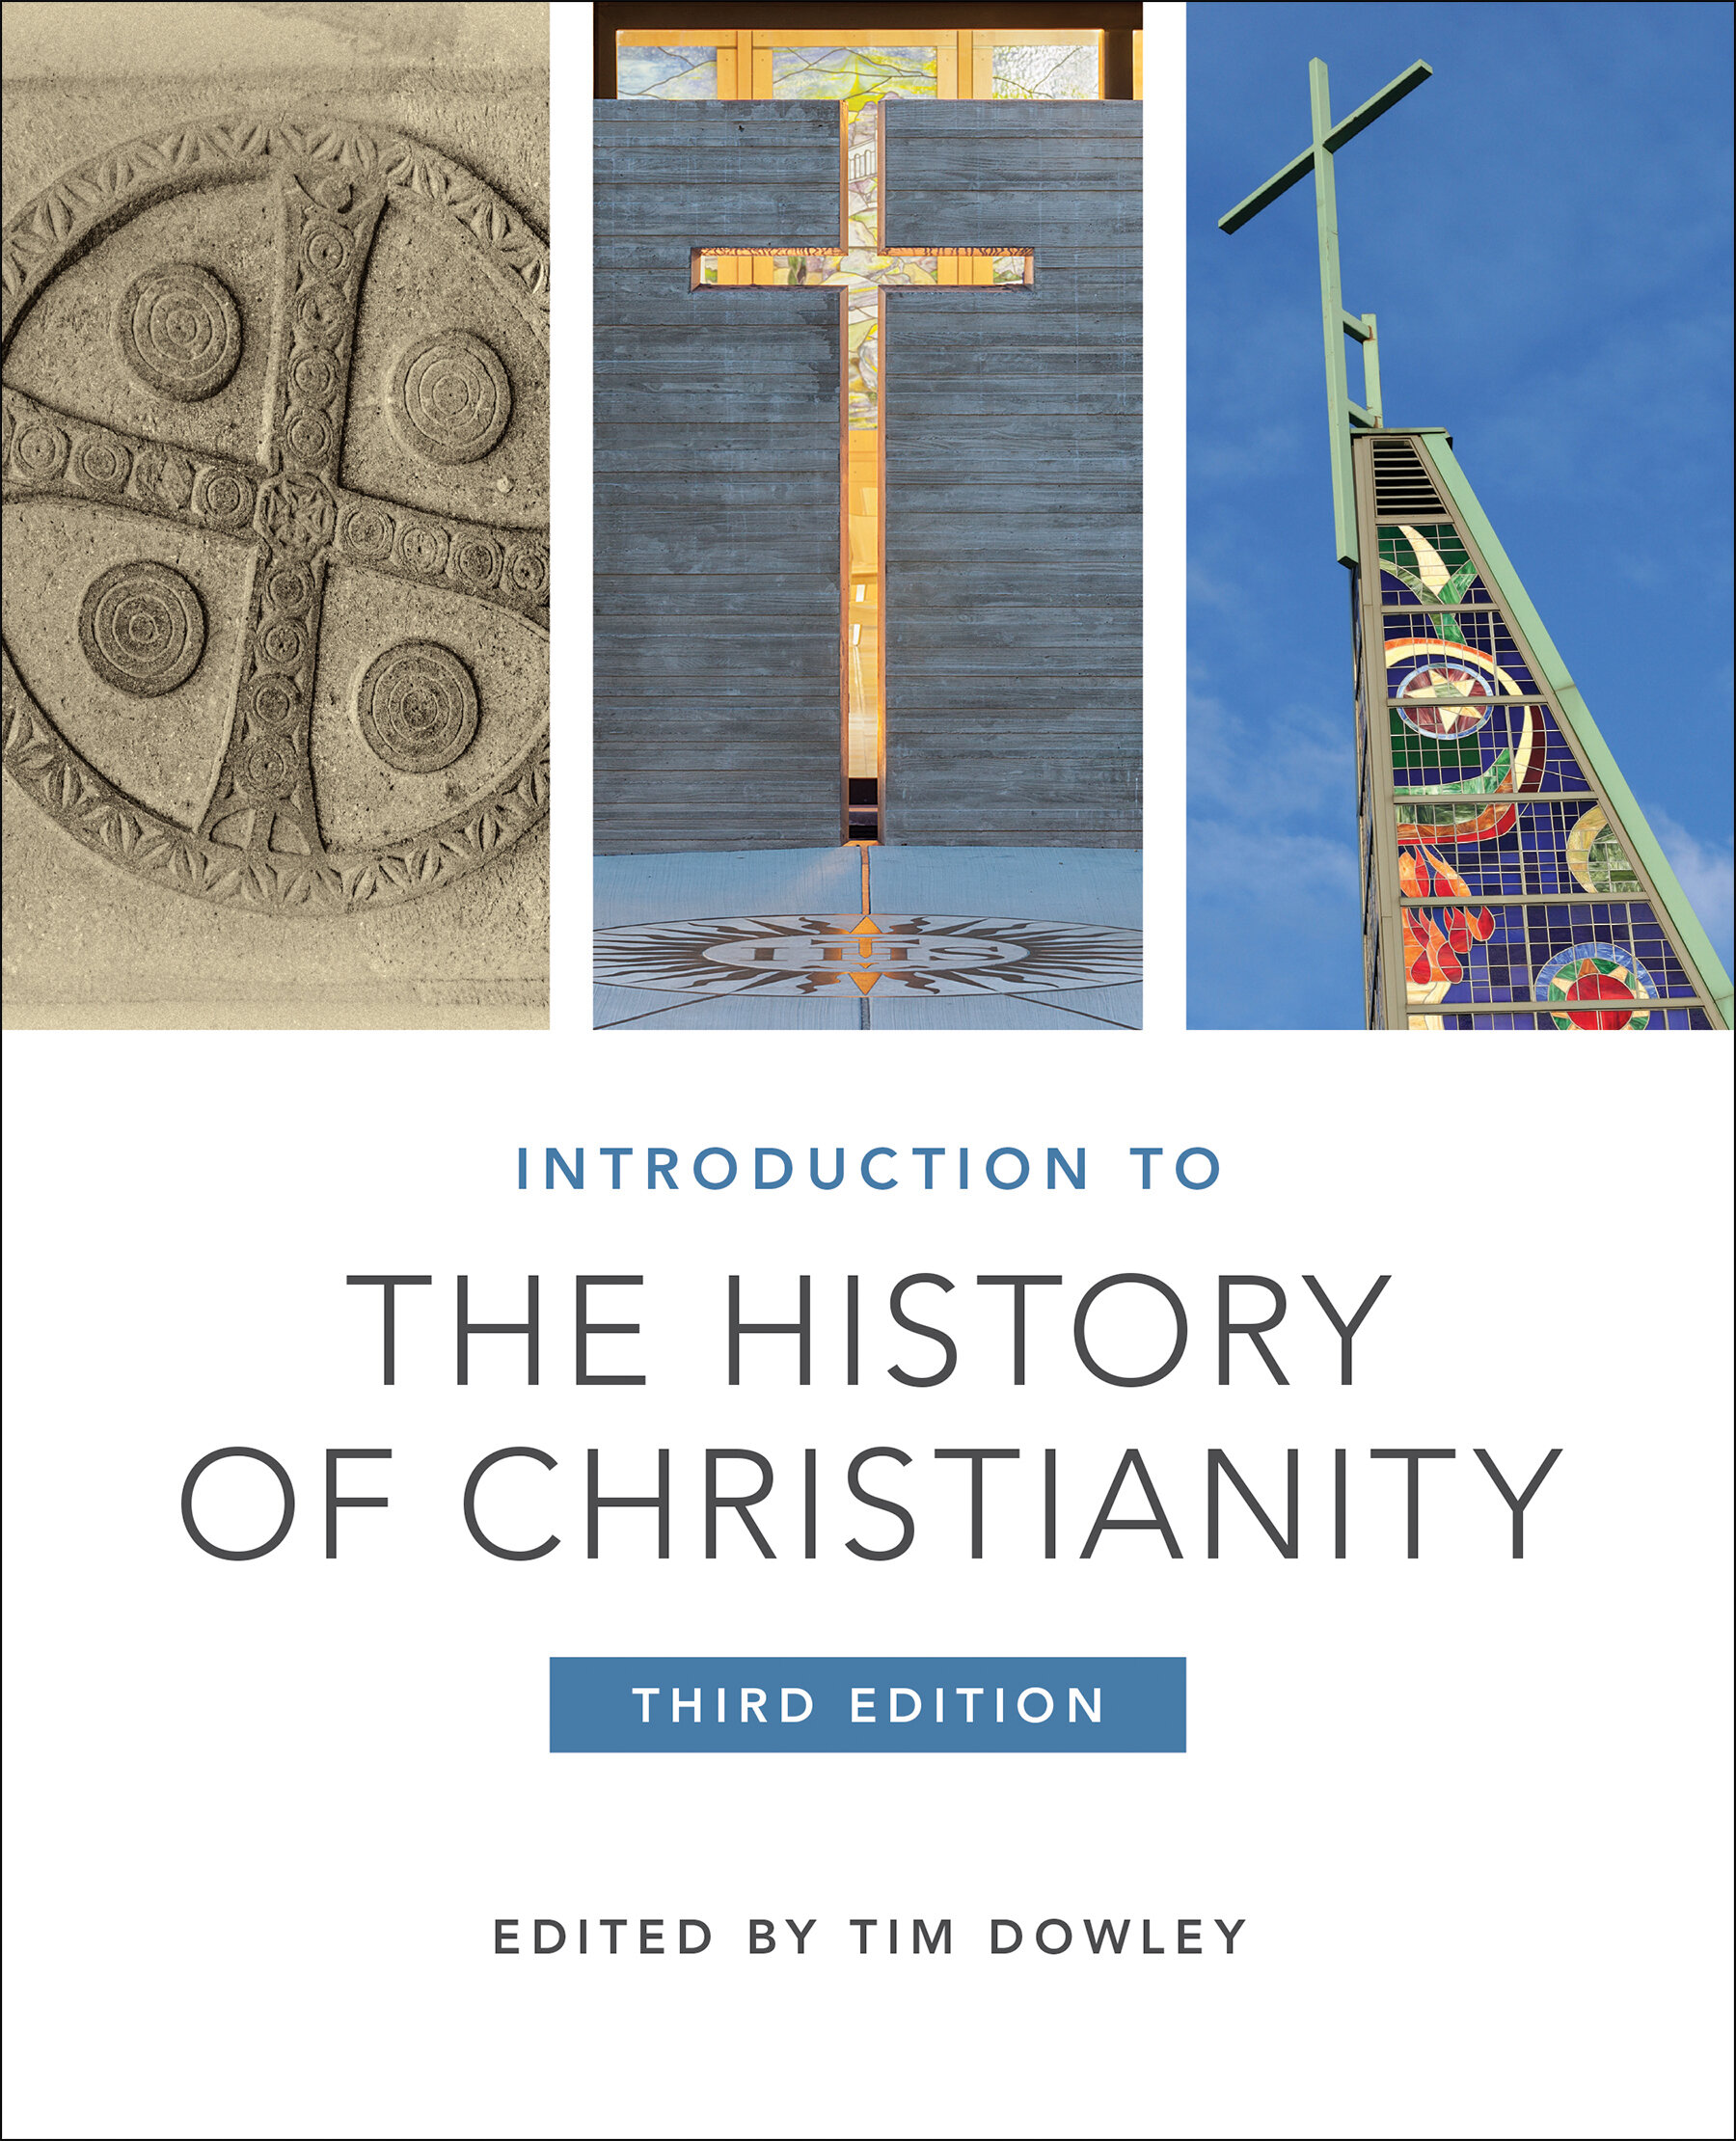 Introduction to the History of Christianity, 3rd ed.